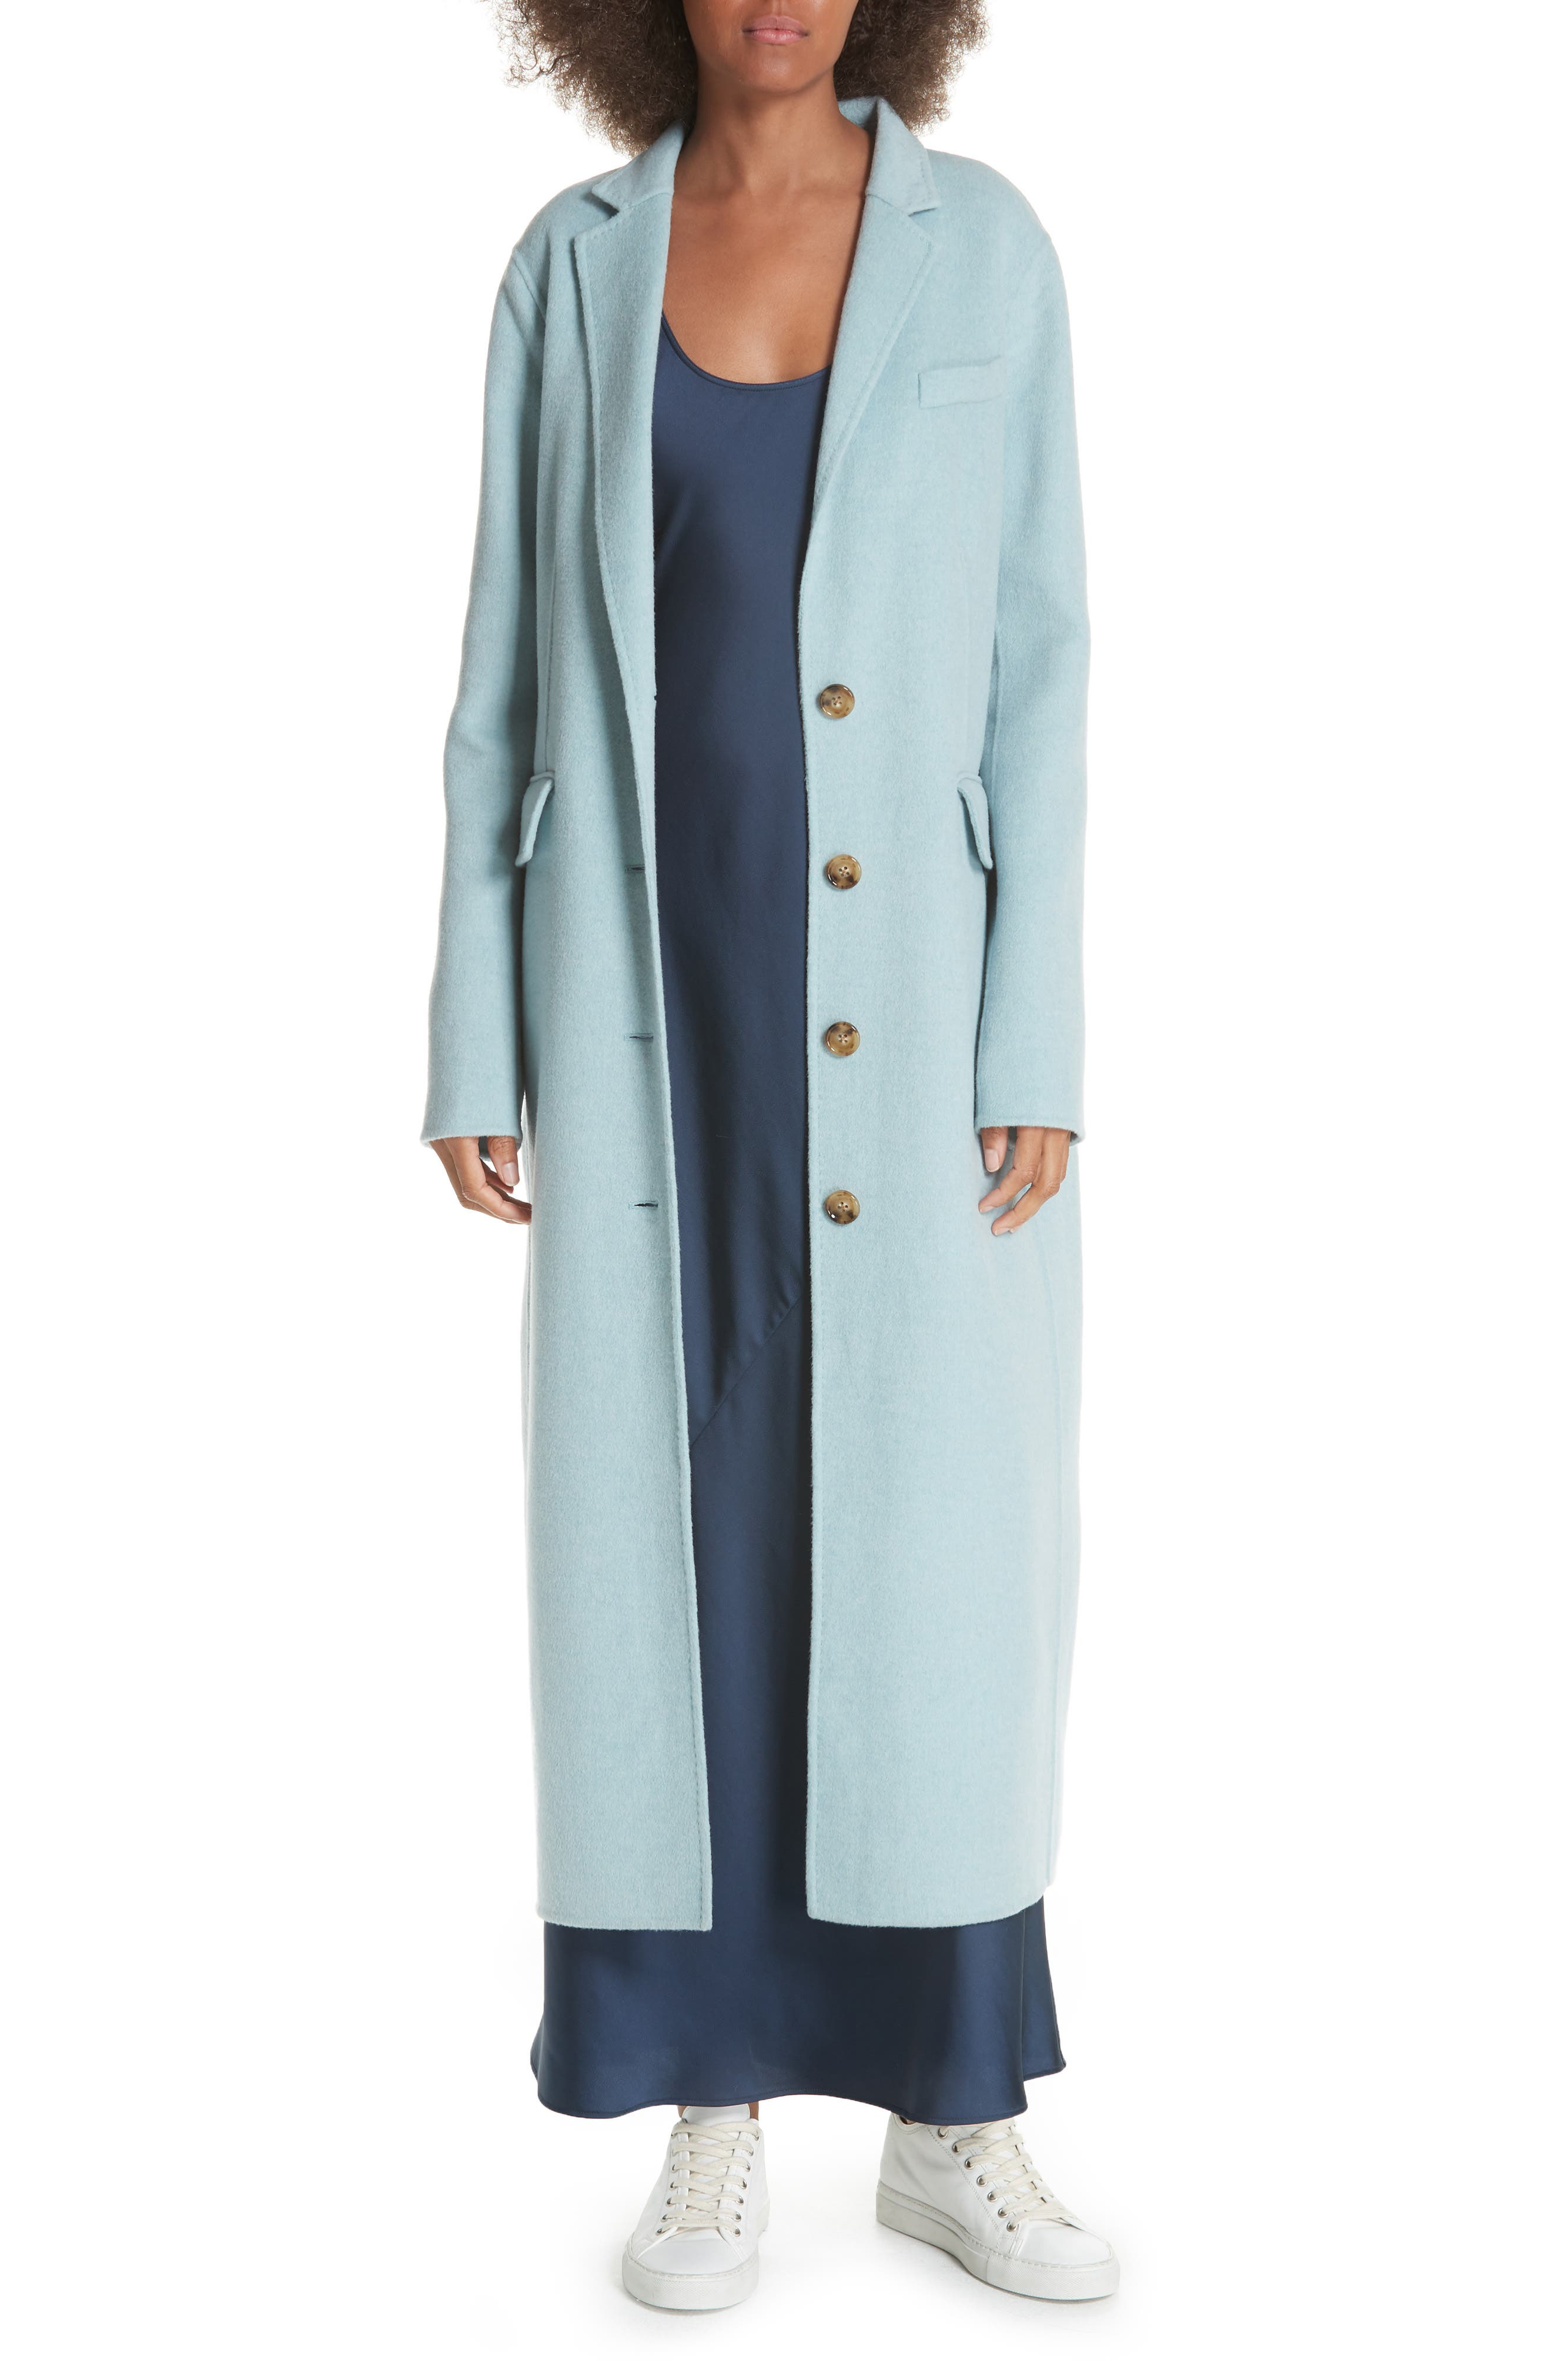 ELIZABETH AND JAMES,                             Russell Wool Blend Coat,                             Main thumbnail 1, color,                             400